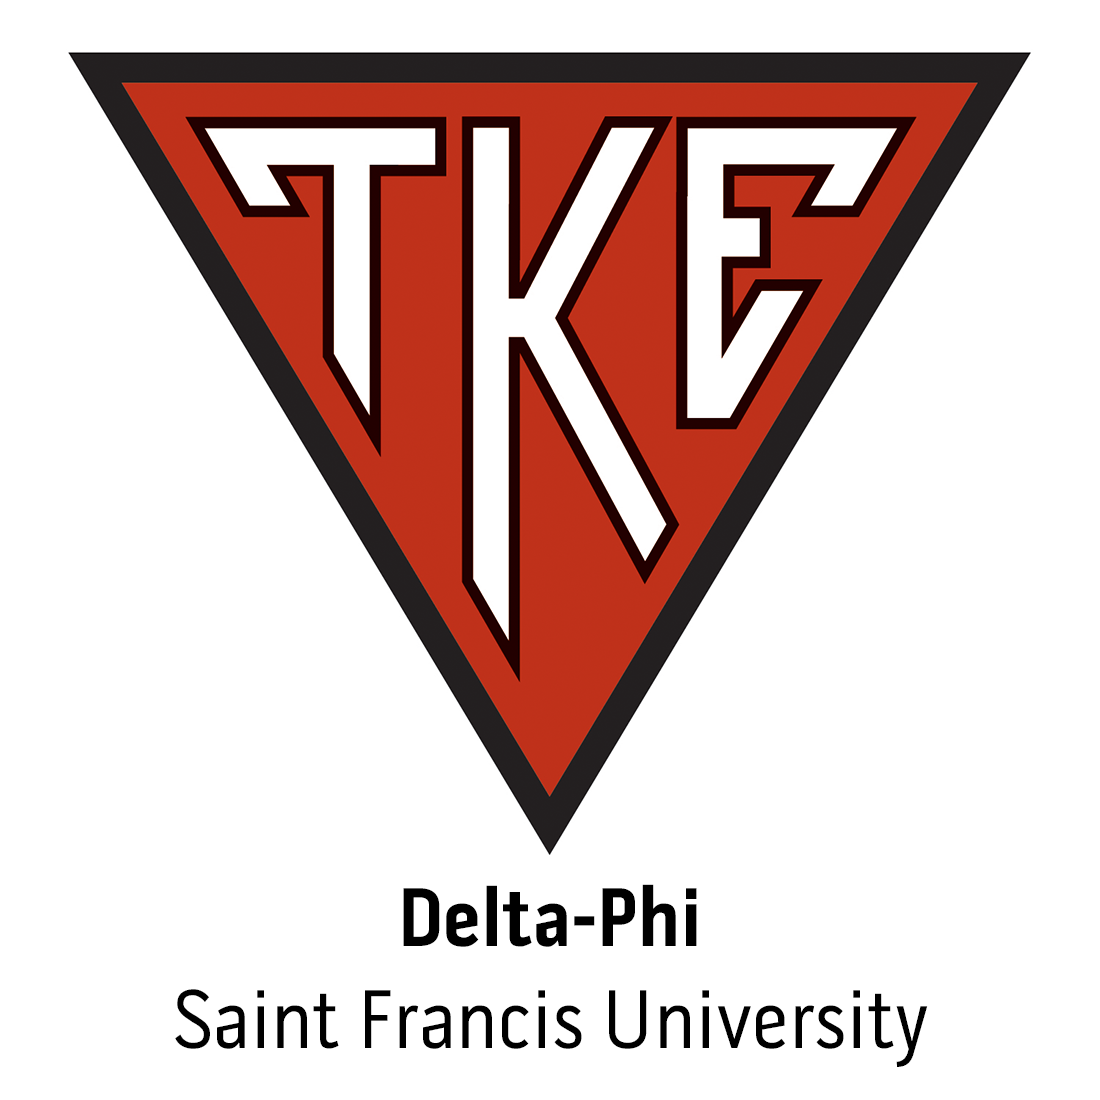 Delta-Phi Chapter at Saint Francis University